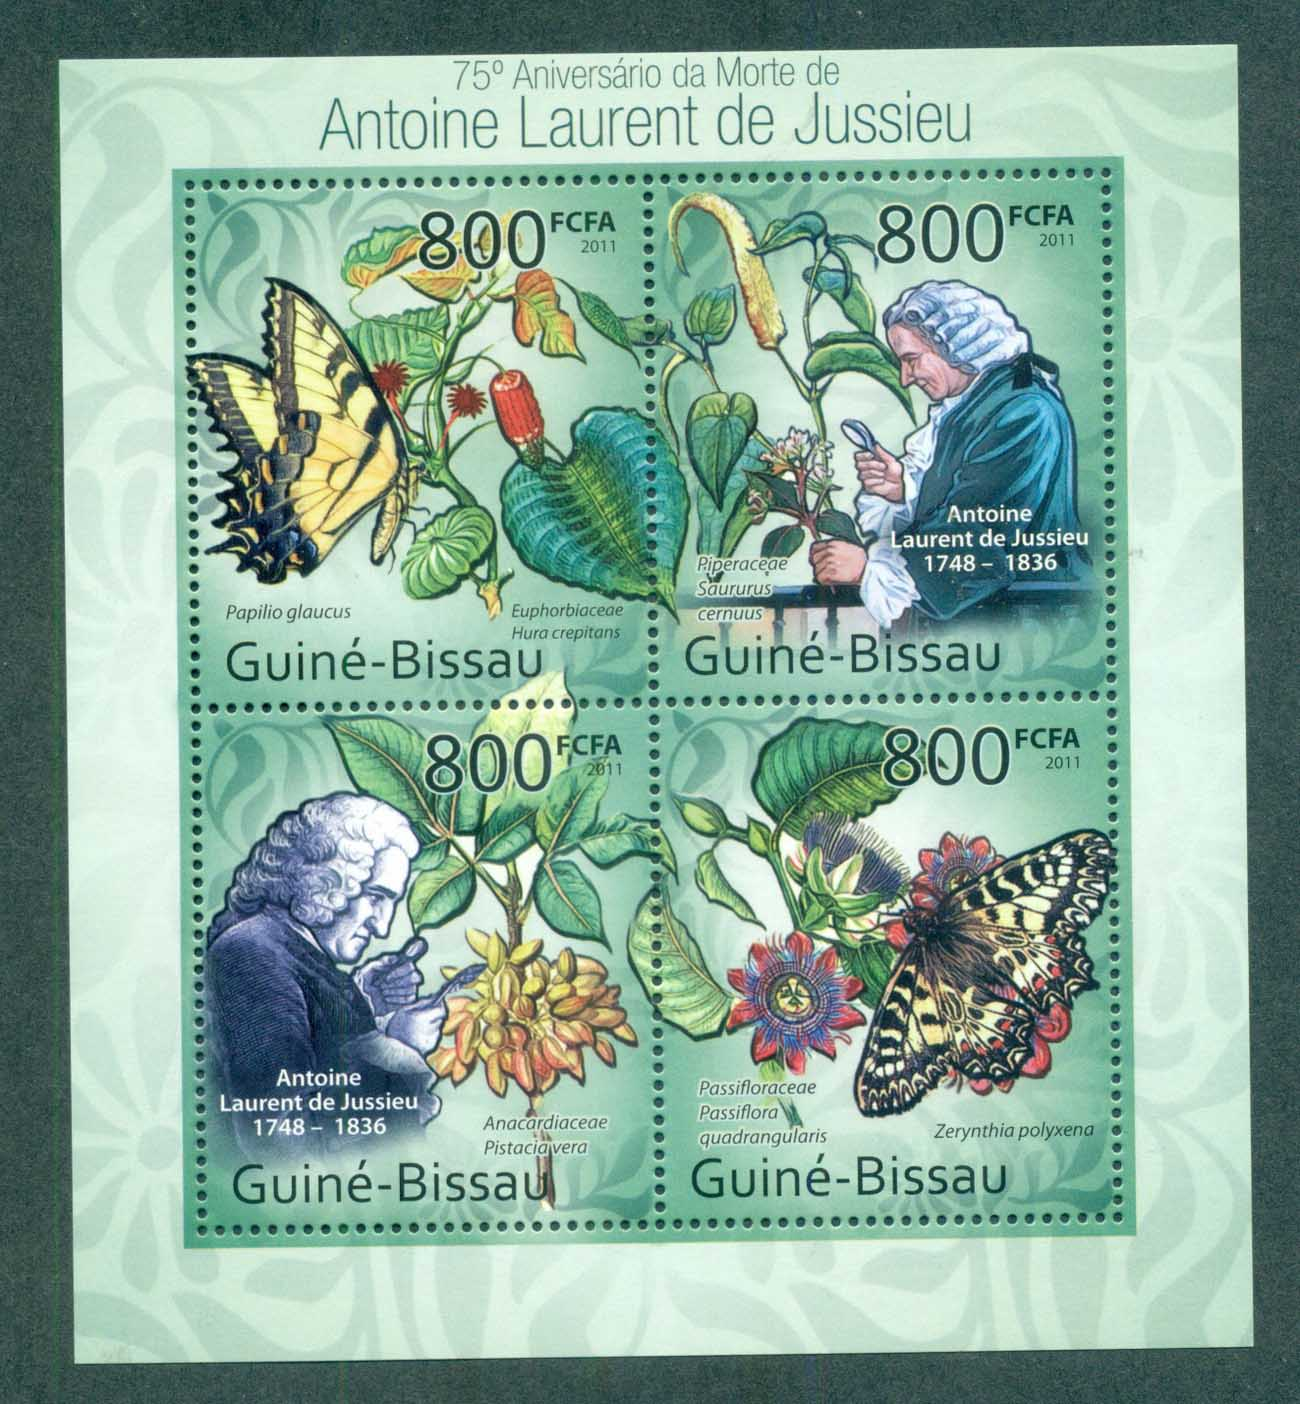 Guinea Bissau 2011 Insects, Butterfly, Antoine Laurent de Jussieu MS MUH GB11419a